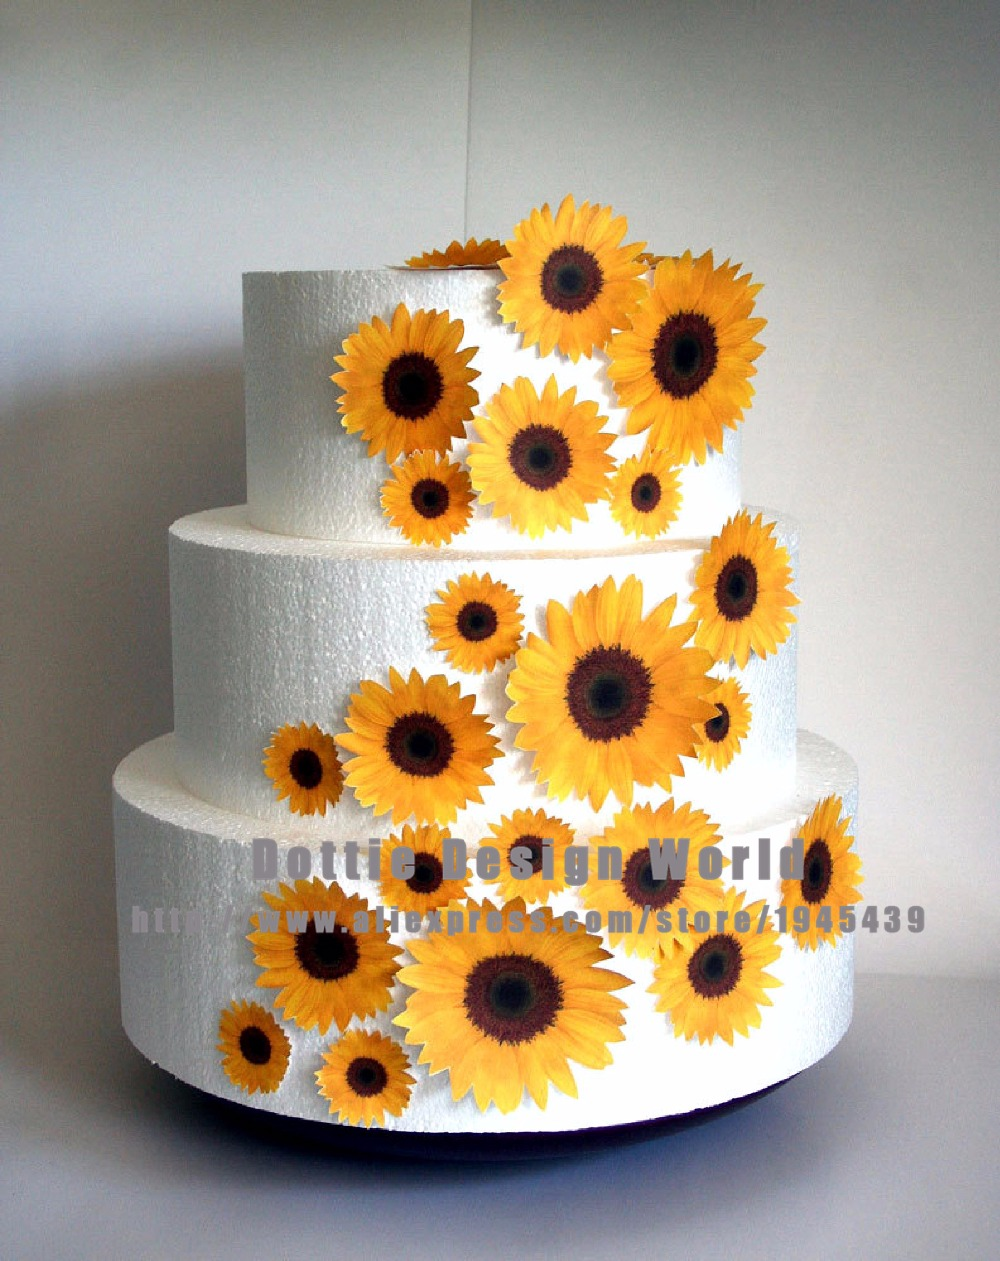 Aliexpress.com : Buy 25 Mixed Sunflower Edible cake topper ...